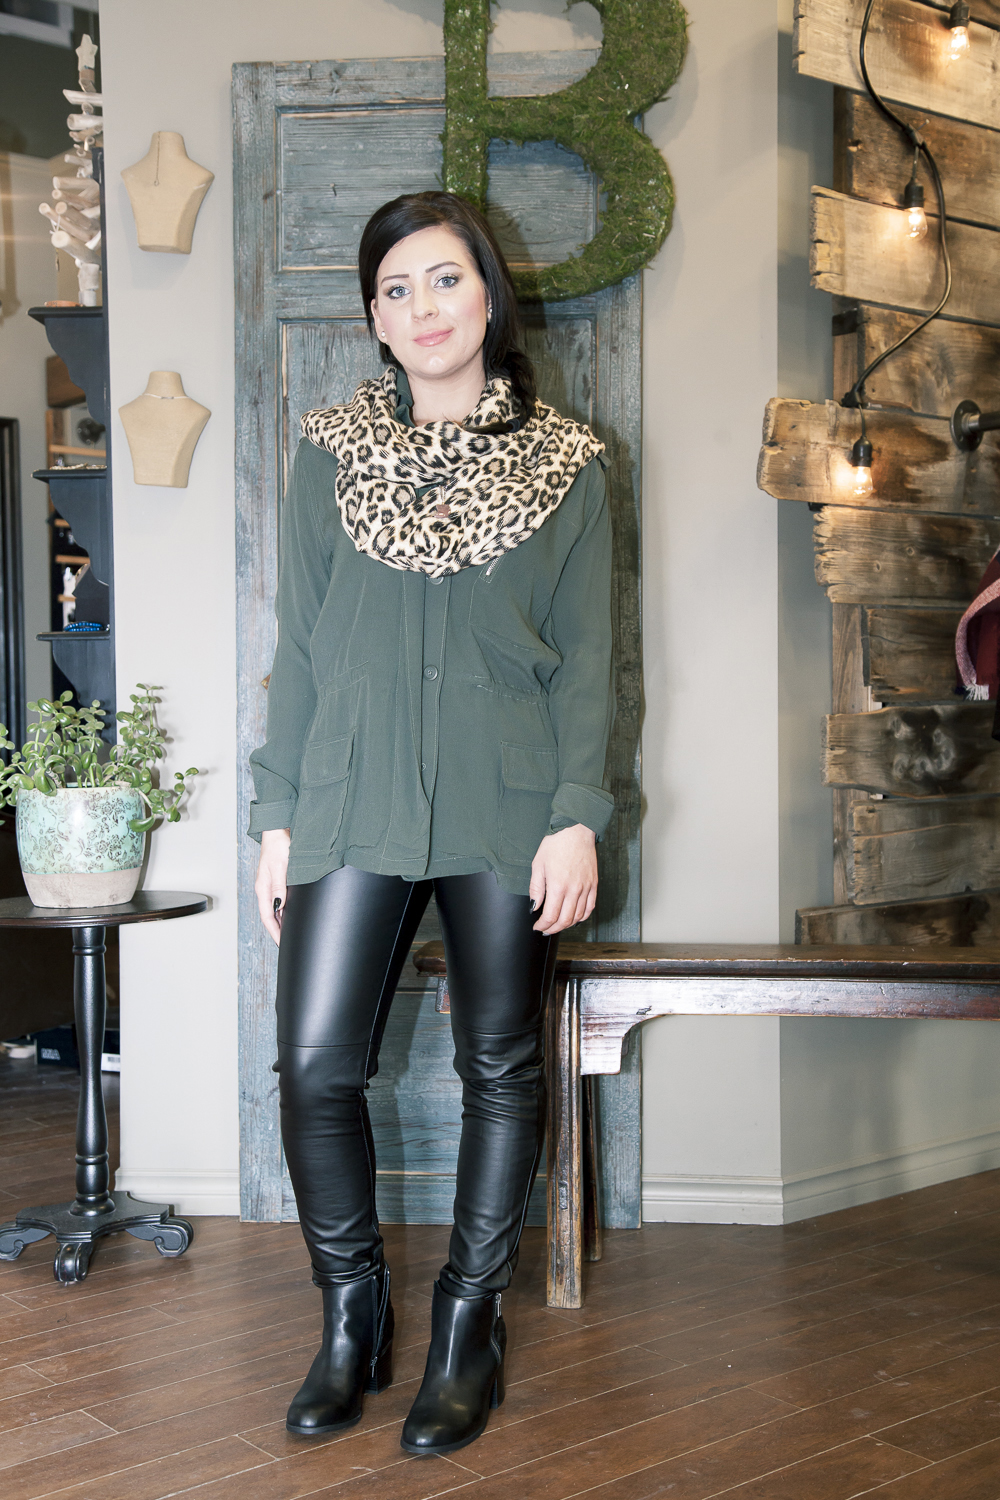 Bella-Maas-Boutique-edmonton-sherwood-park-st-albert-trend-spring-coat-army-bb-dakota-mia-shoes-michael-kors